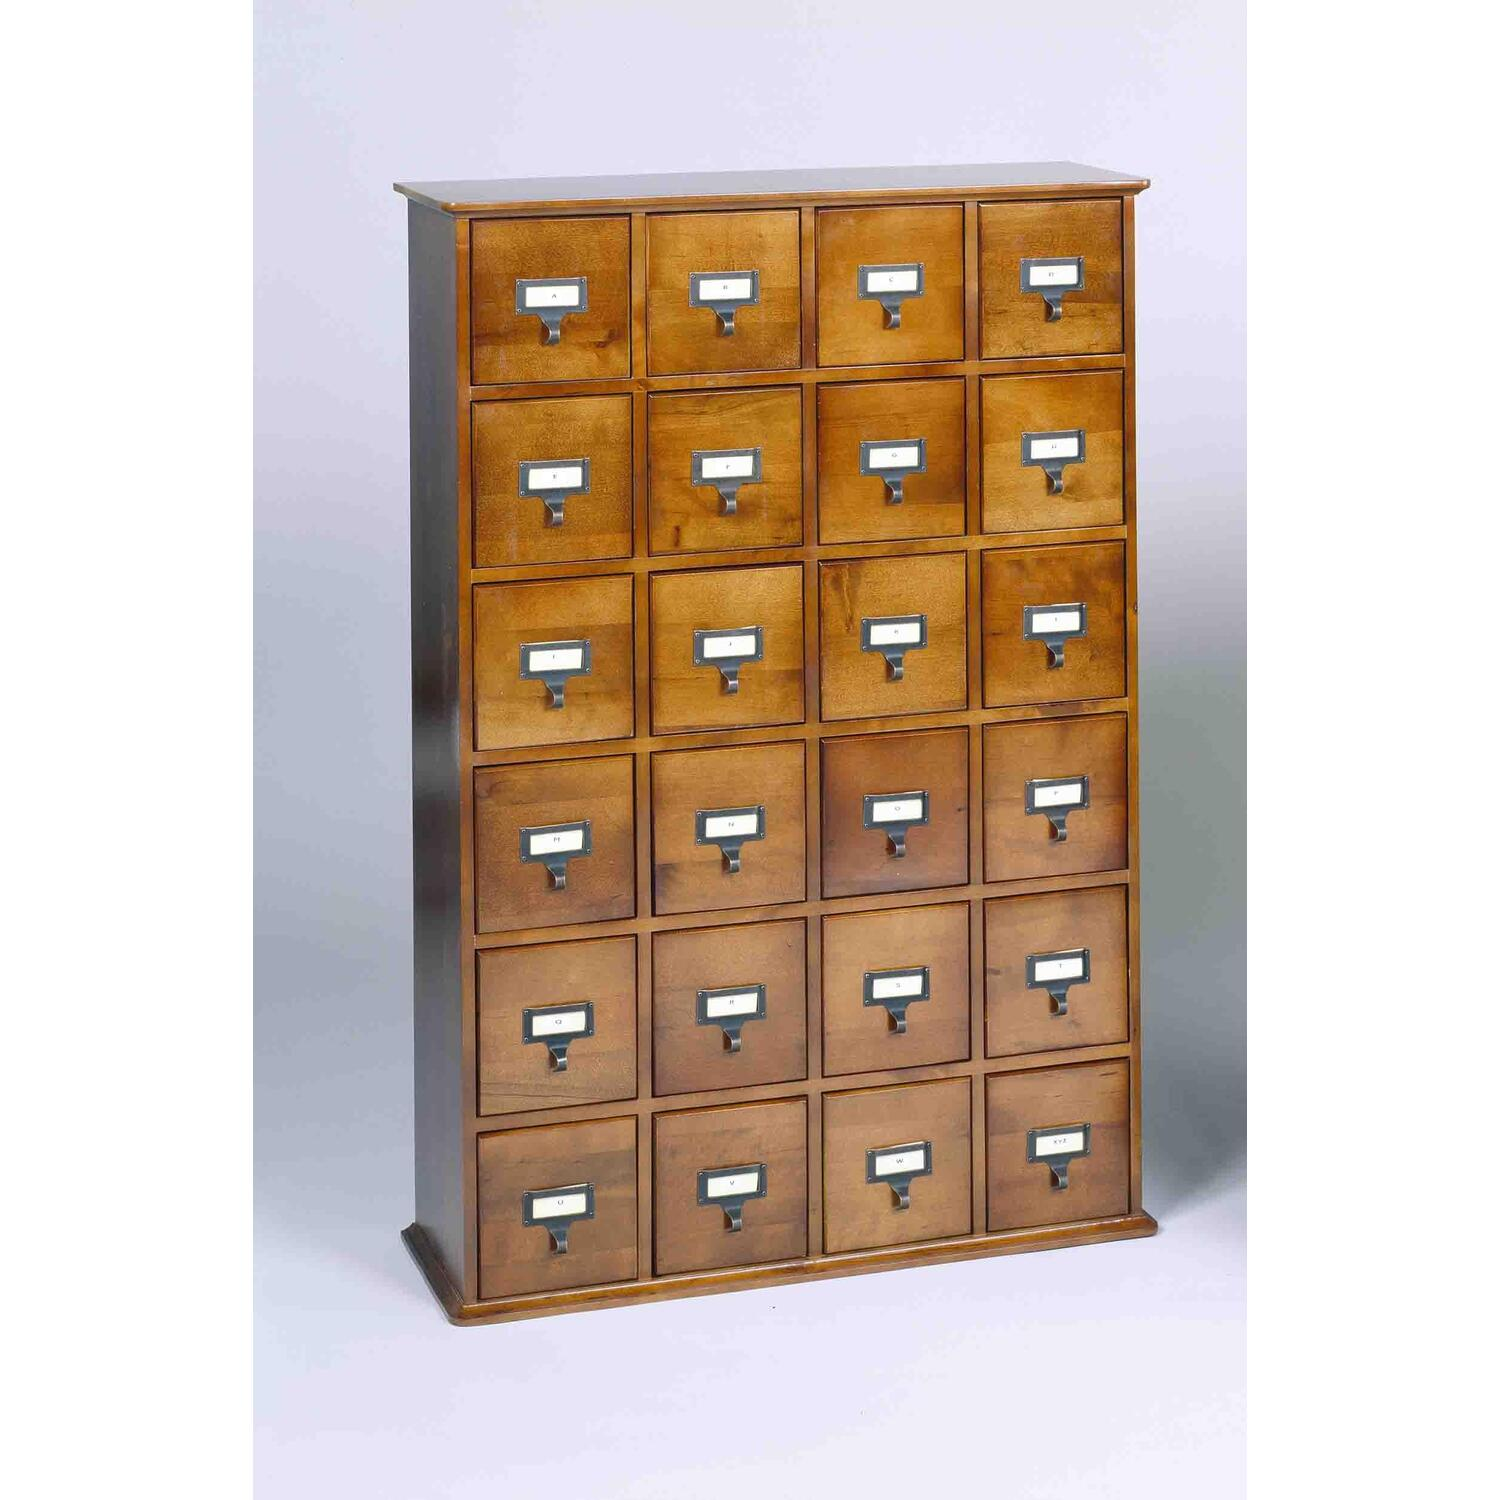 Leslie Dame Library Card File Multimedia Cabinet by OJ